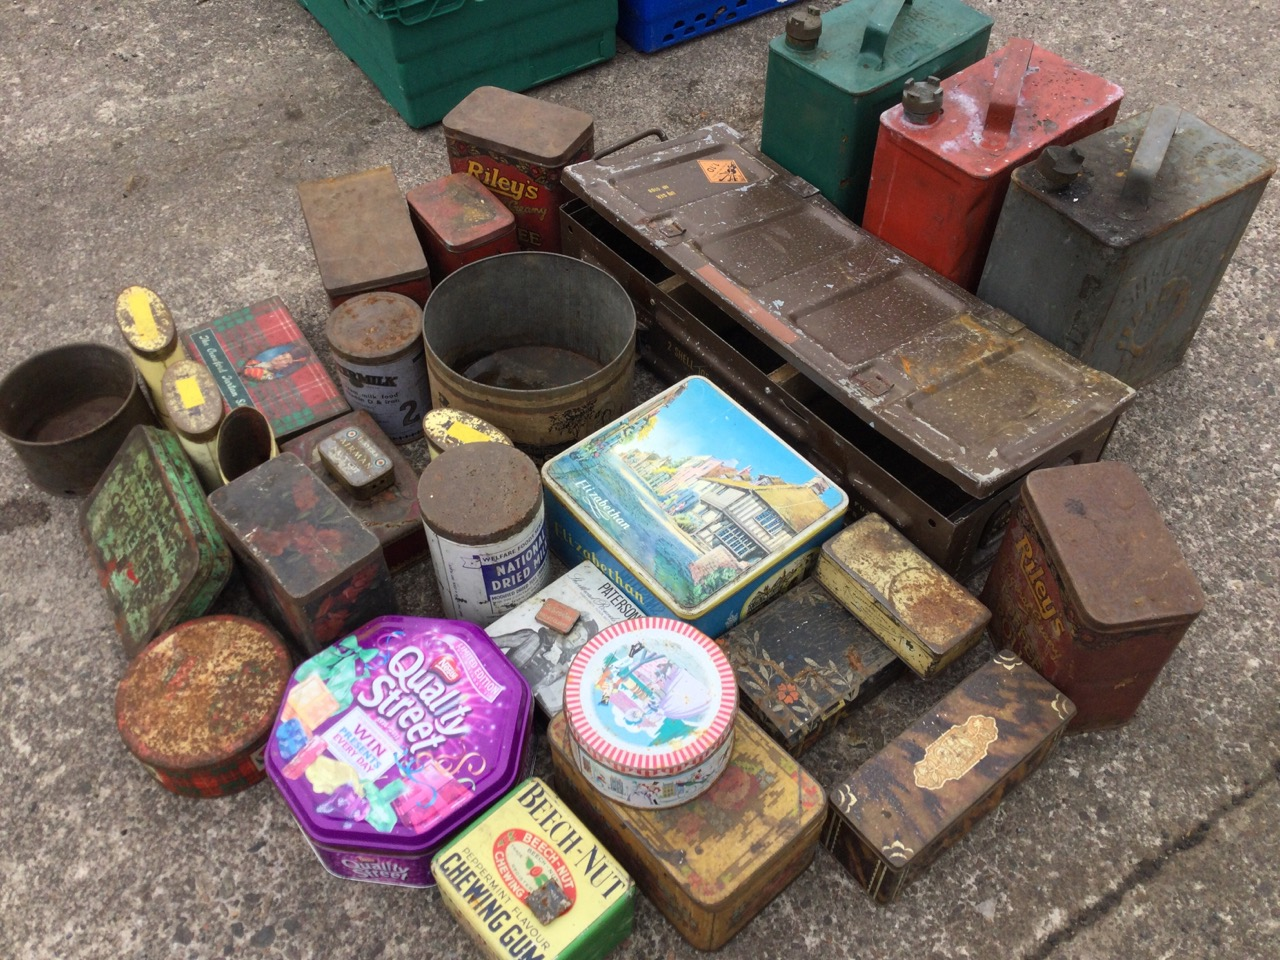 Miscellaneous tins including three shell oil cans, biscuit tins, an ammunition box, toffee tins, - Image 3 of 3